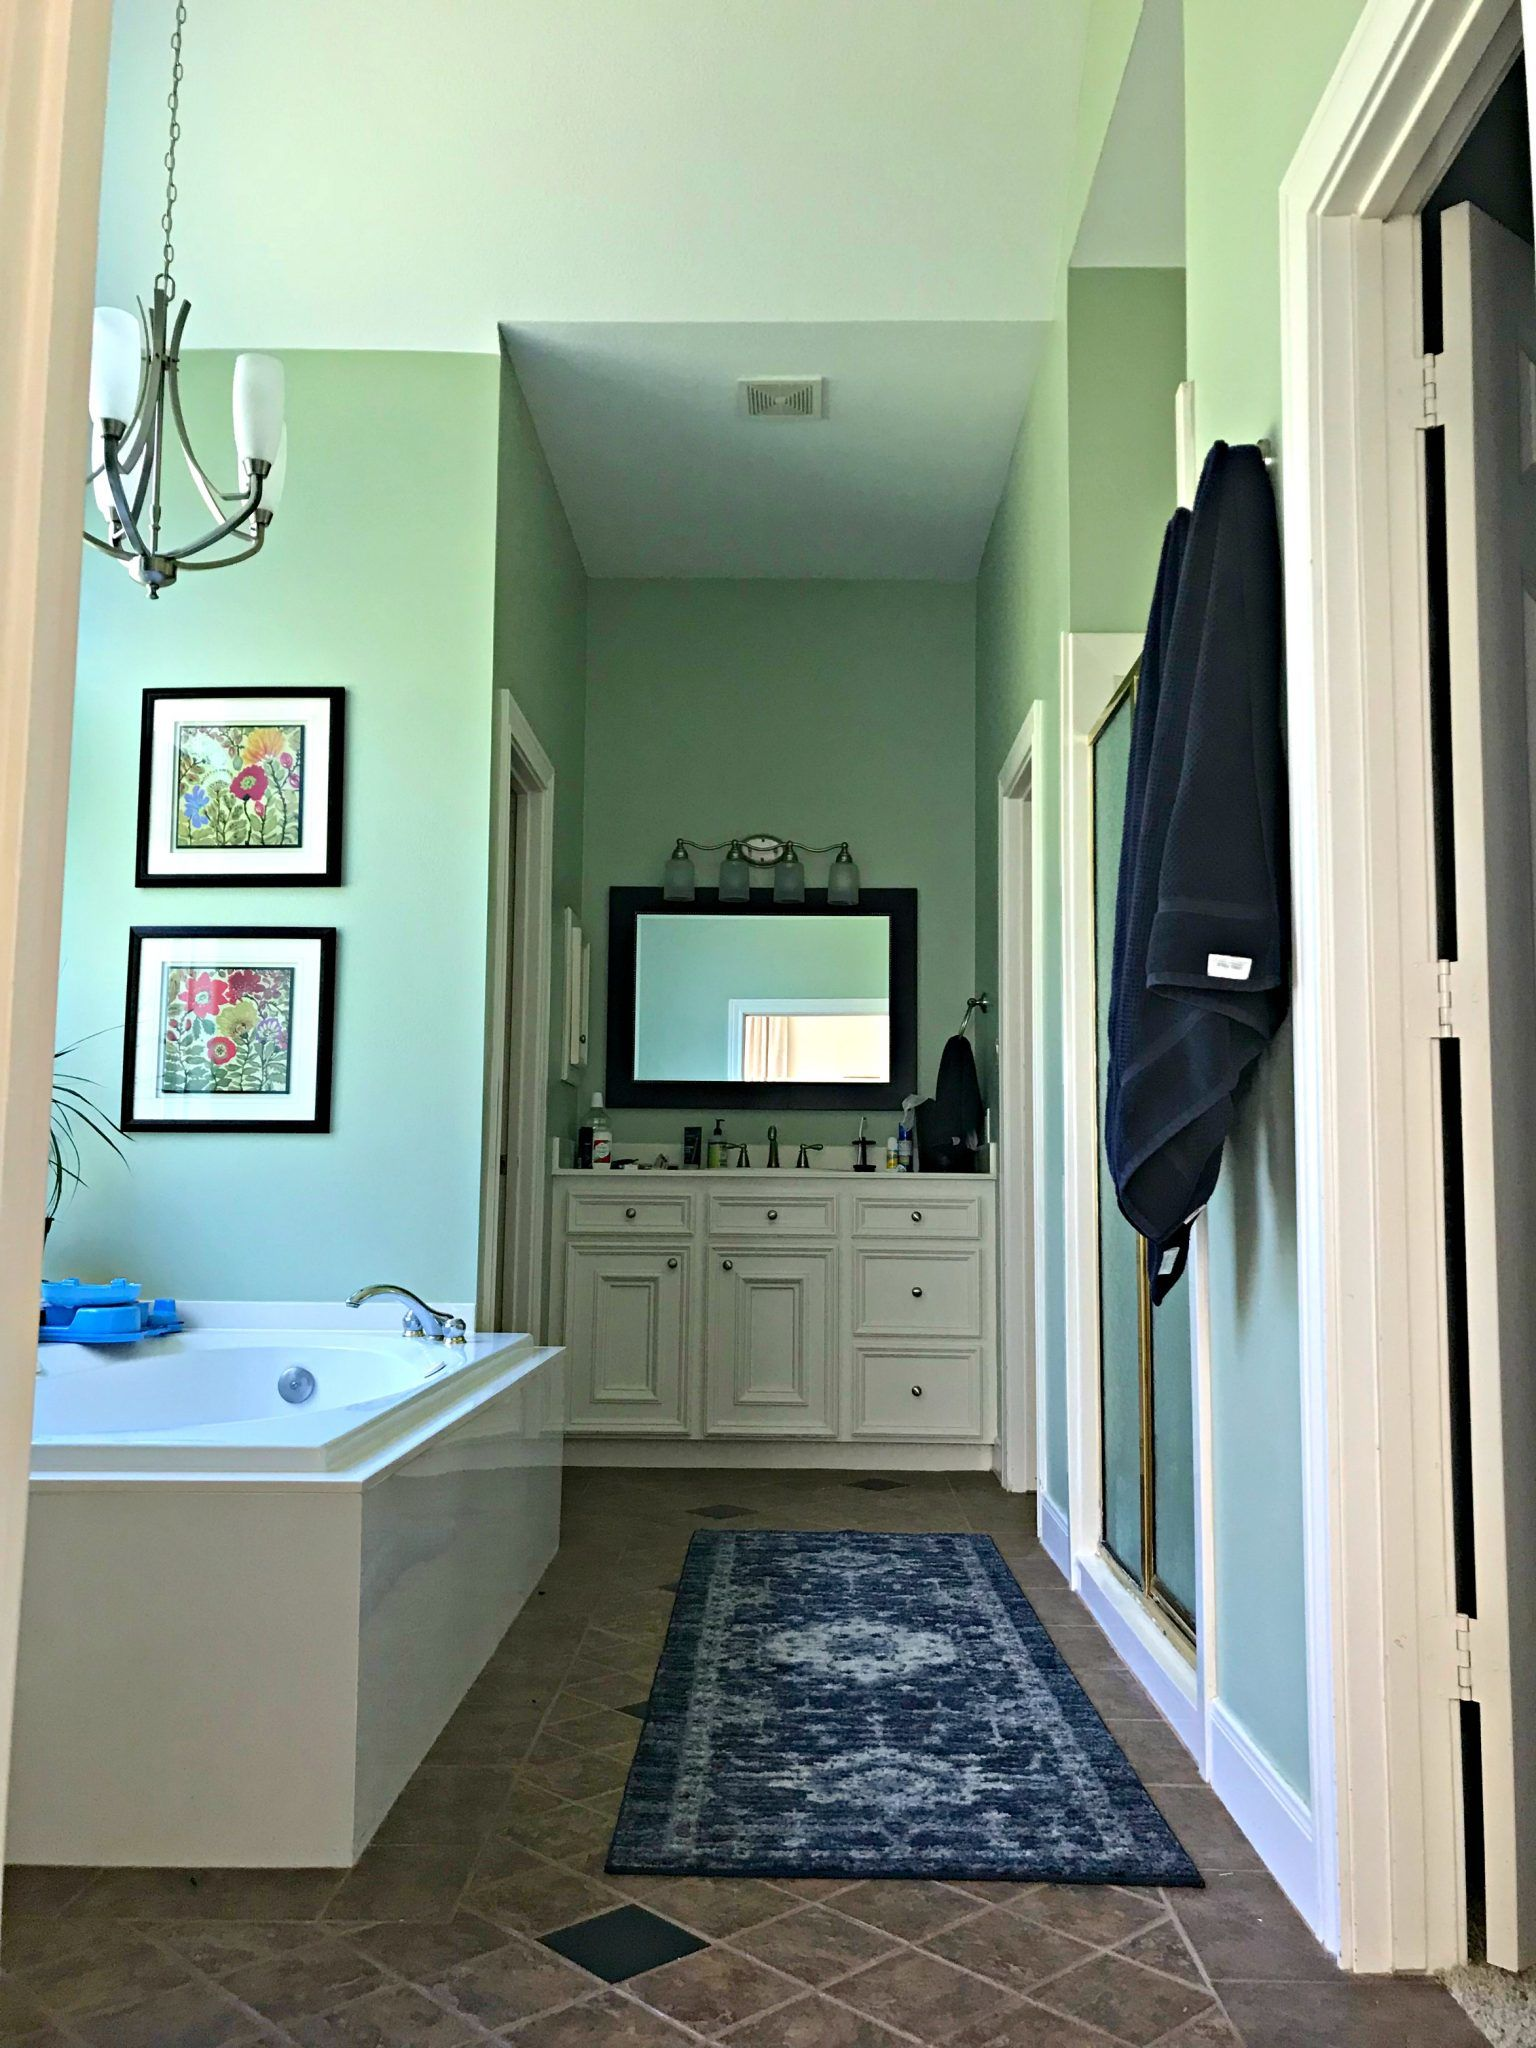 Yay! Our Bathroom Remodel is finished and I finally get to share all of the Before and After Master Bathroom Remodel photos with you guys.  This is a before photo.